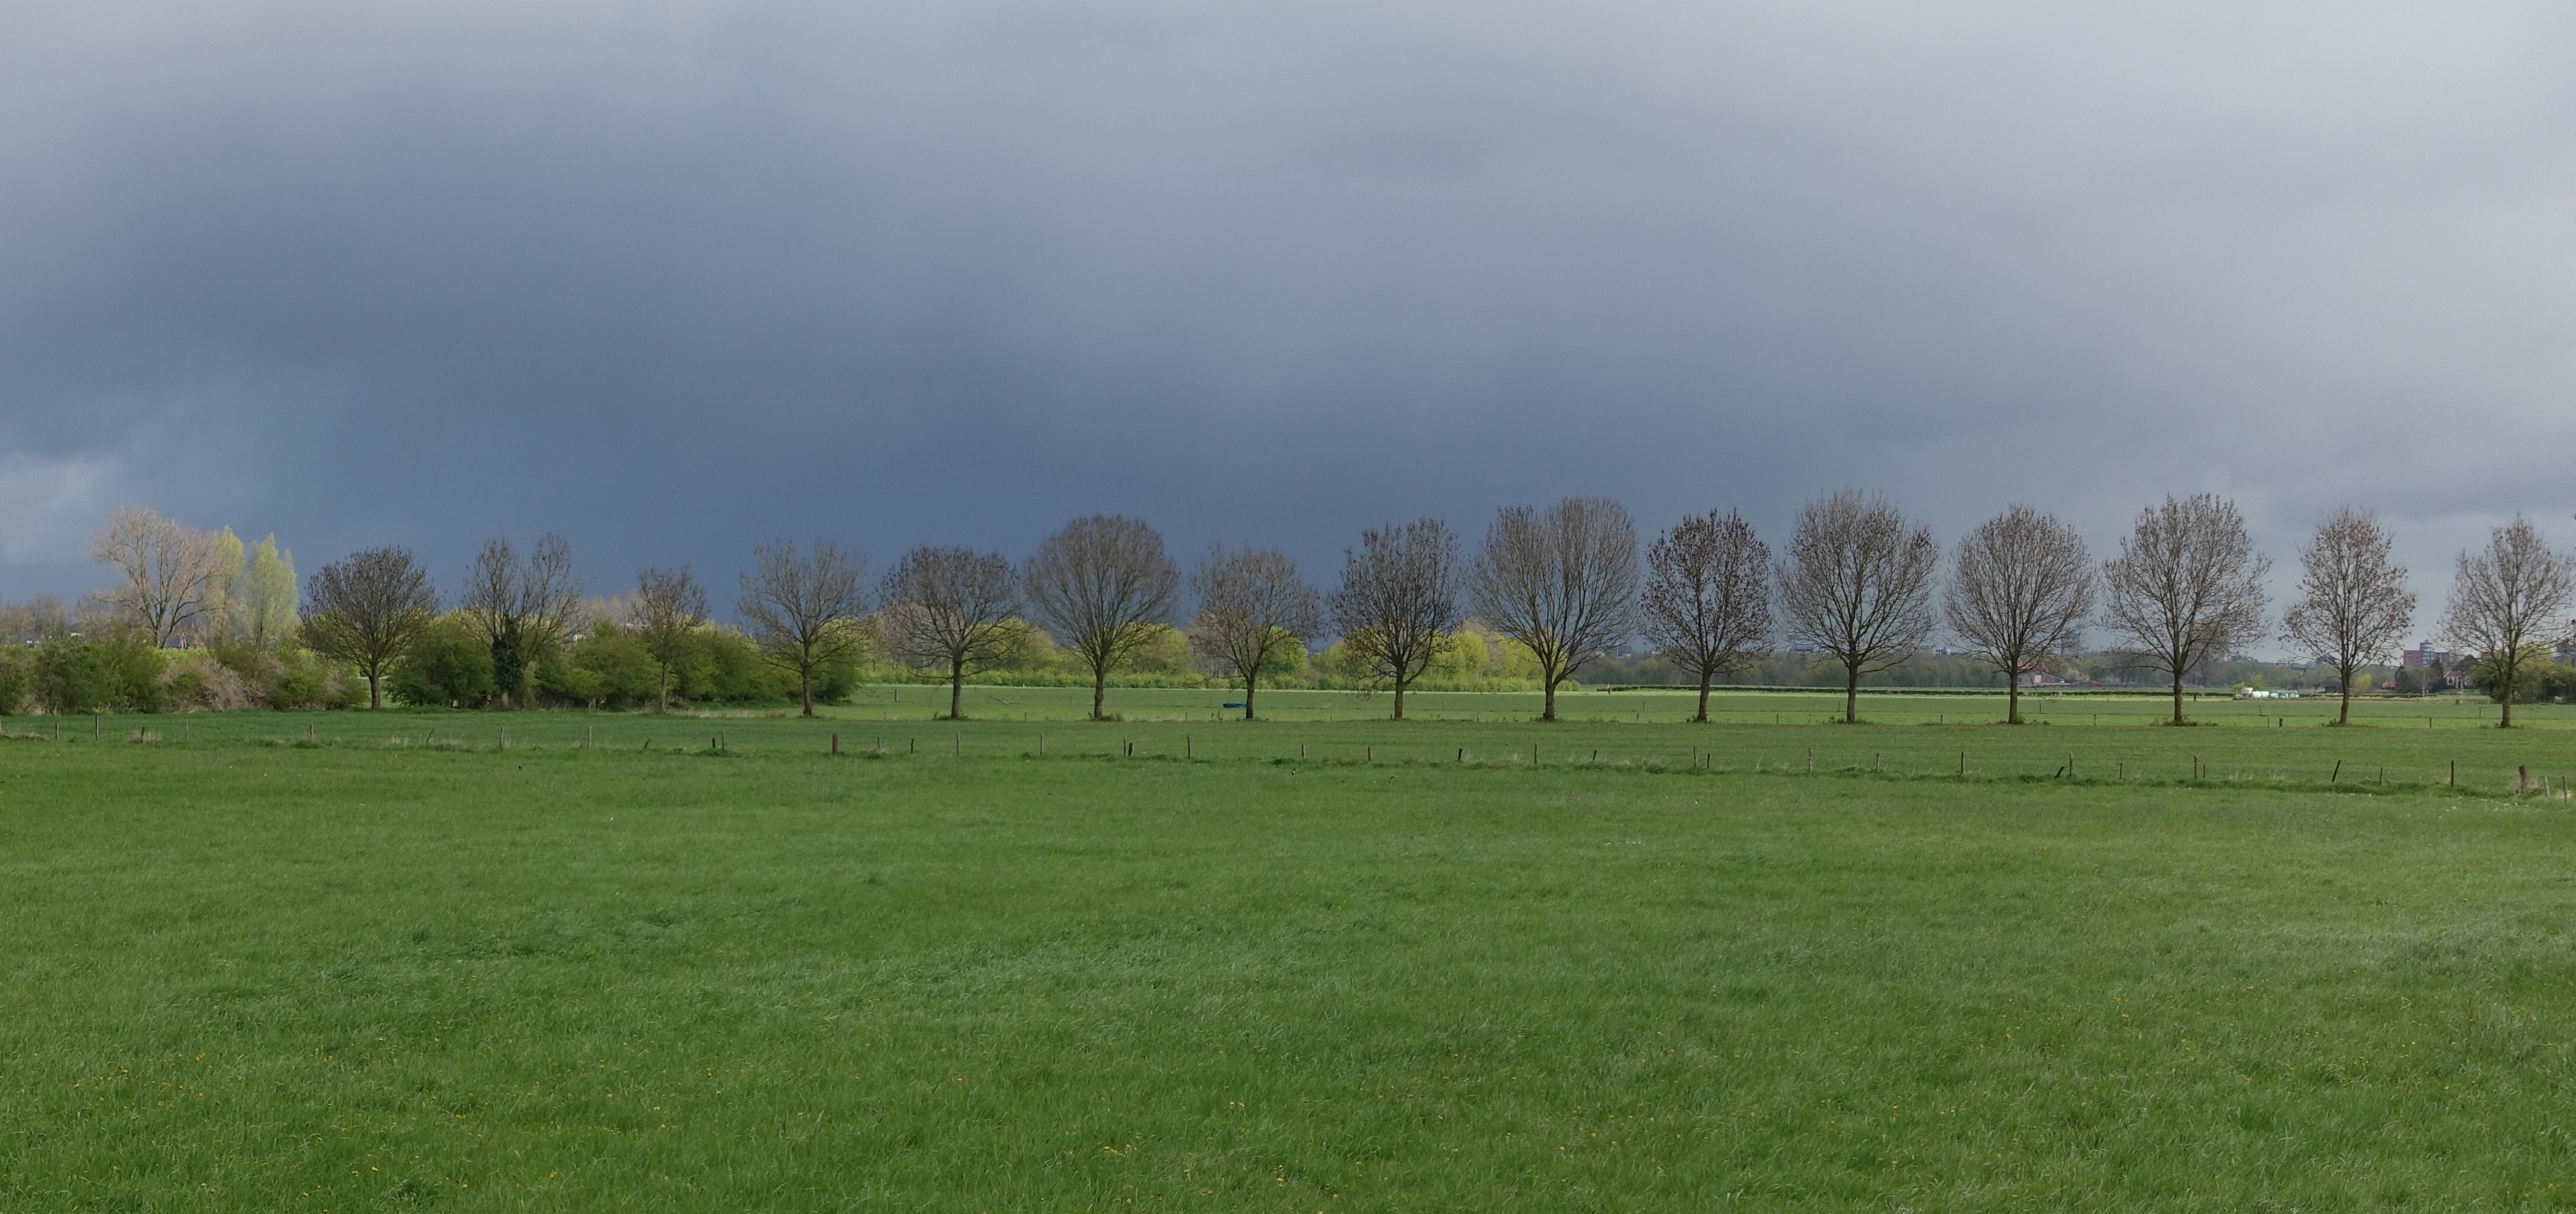 Dark skies. I love the blue and green contrast